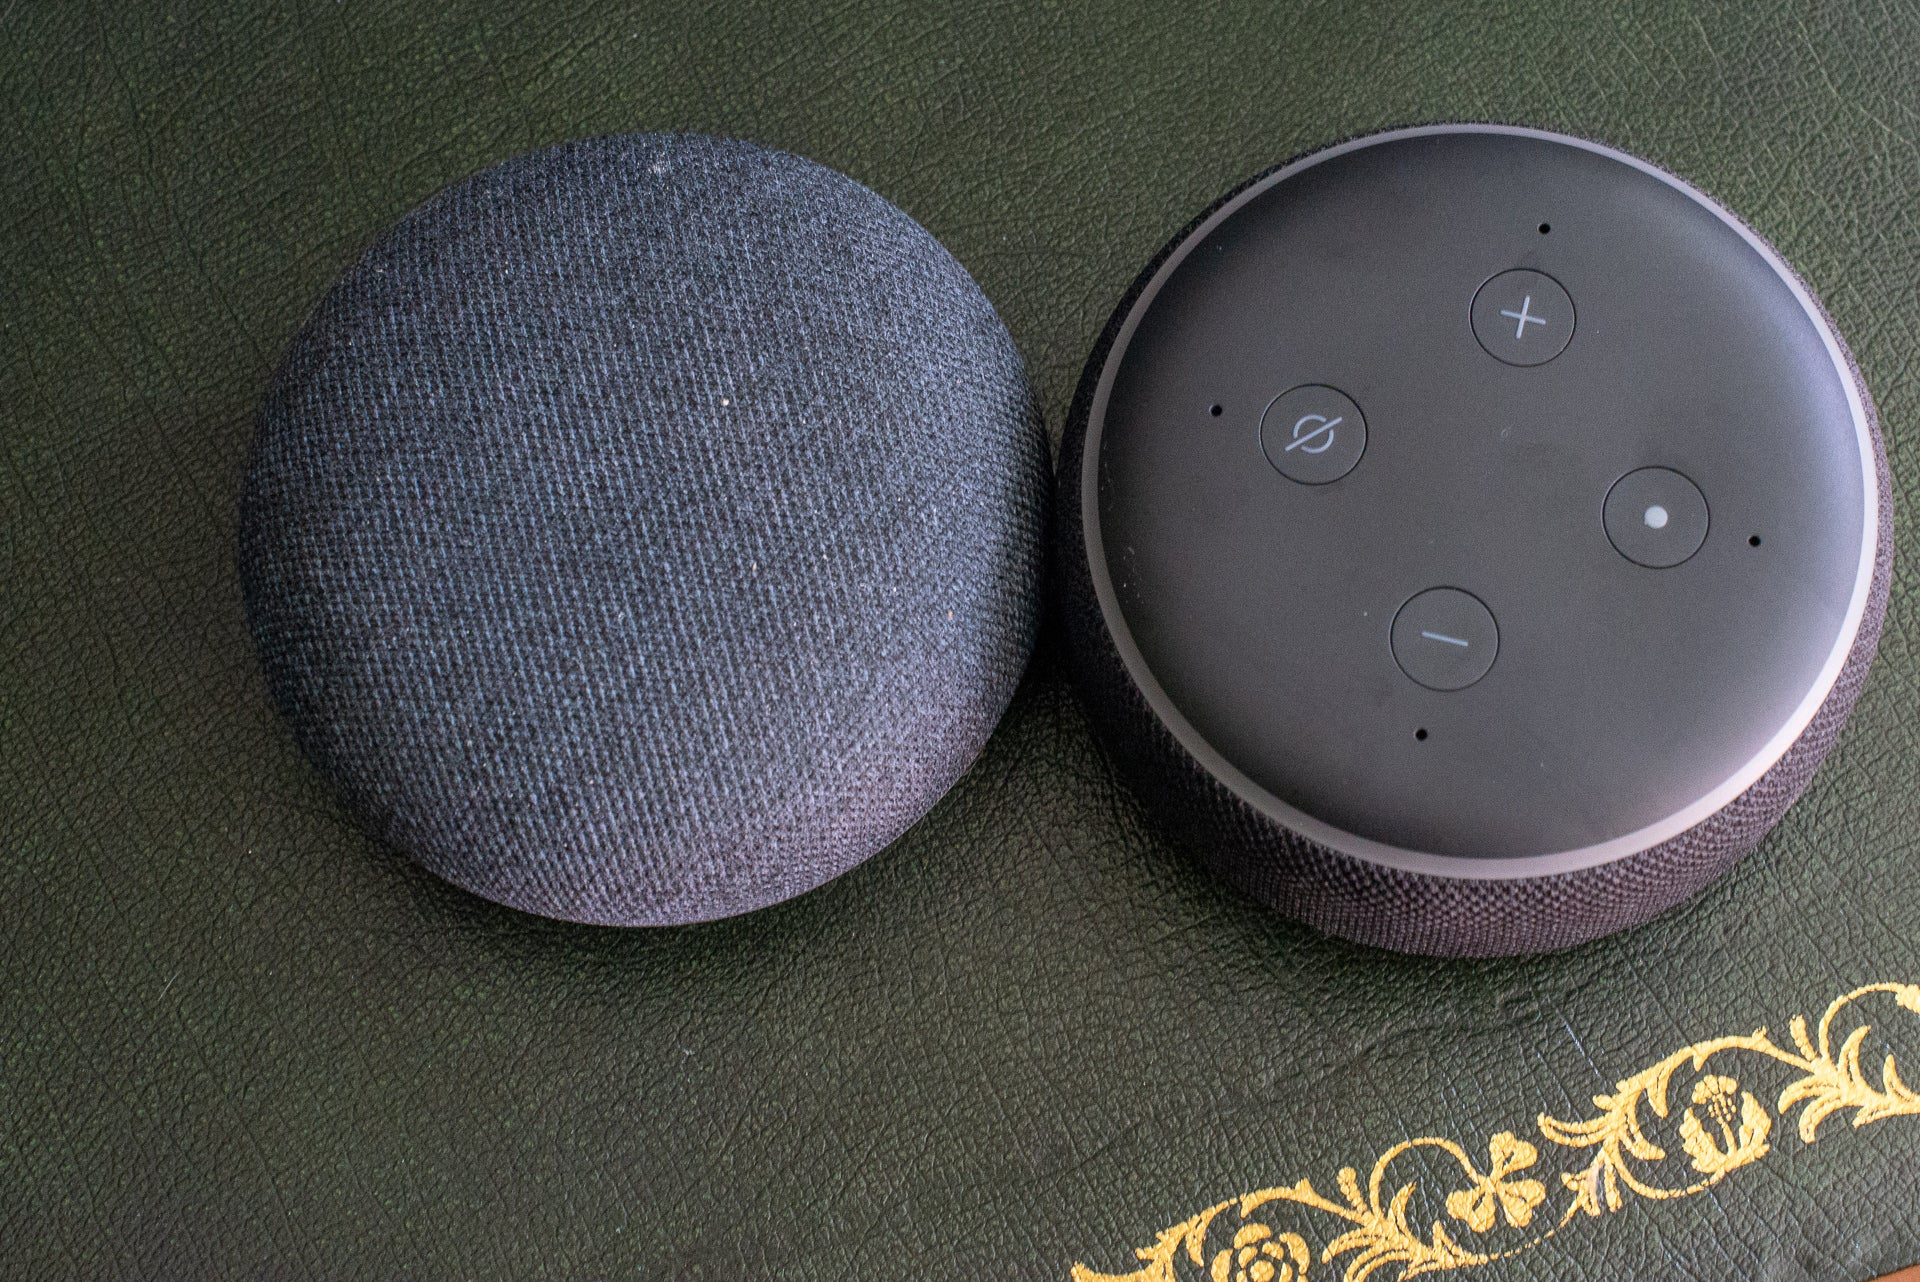 Amazon Echo Dot (3rd Gen) vs Google Home Mini